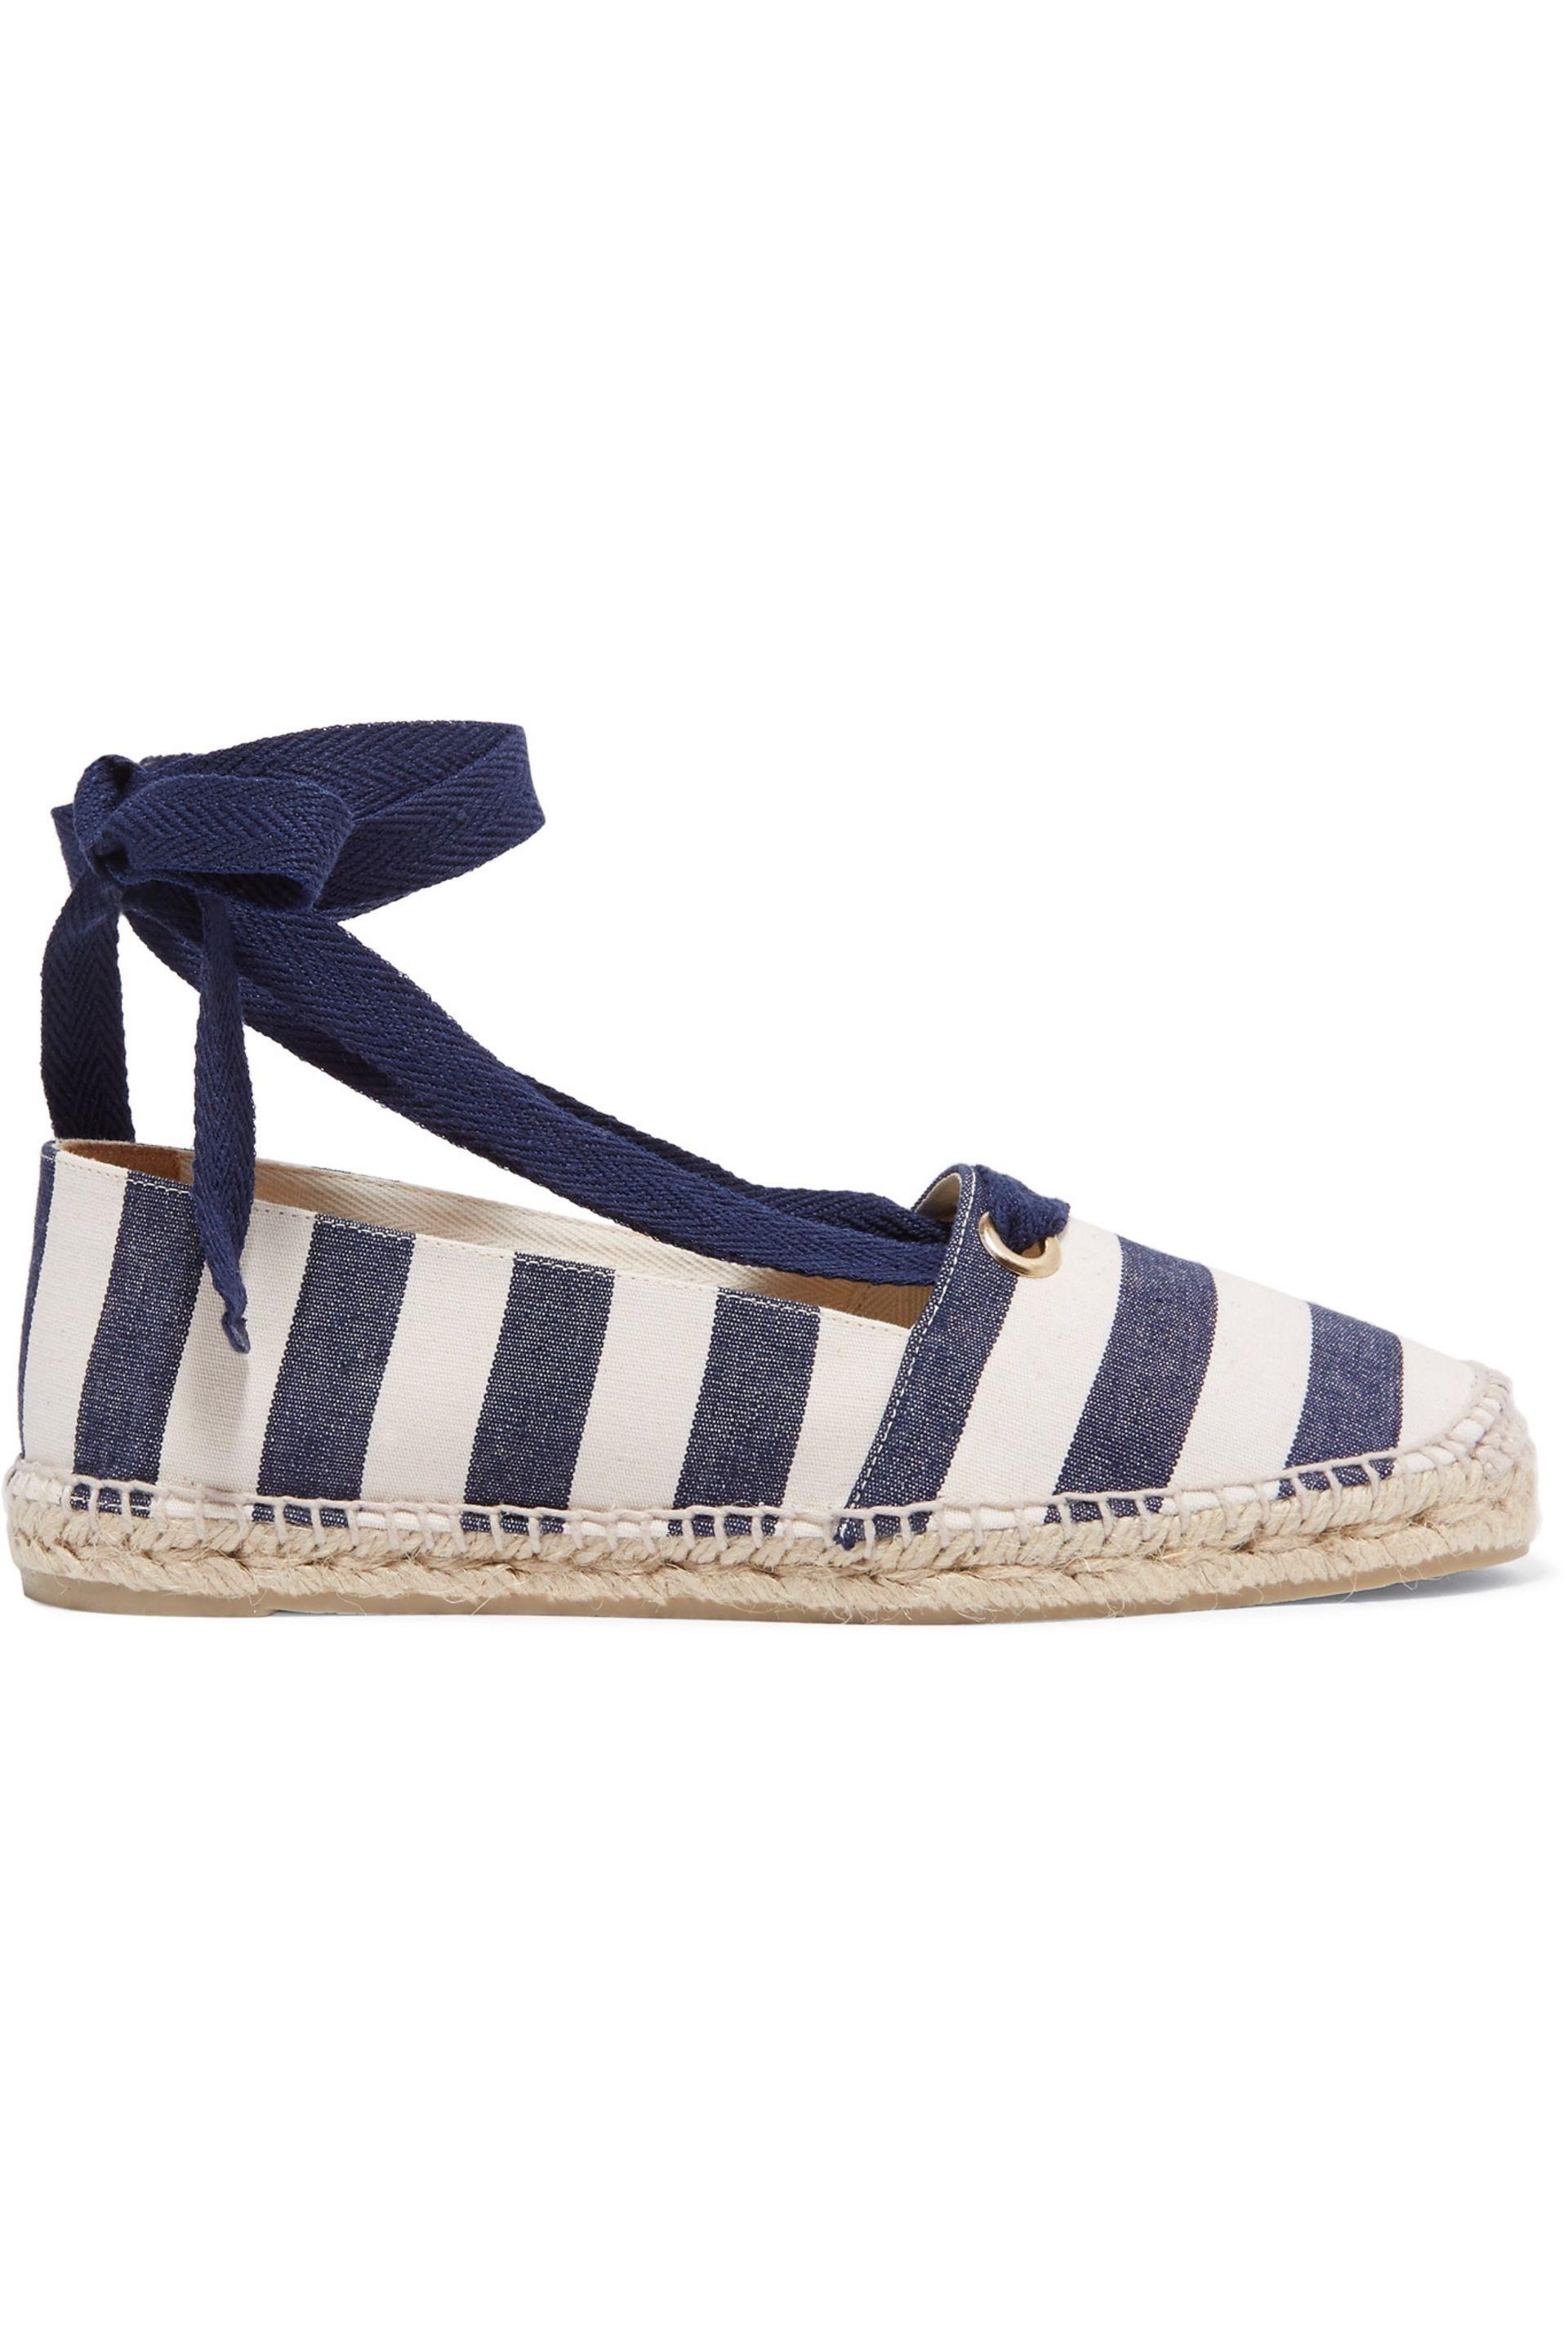 ded3fa5cb Lyst - Castaner Kanda Rayas Striped Canvas Espadrilles in Blue